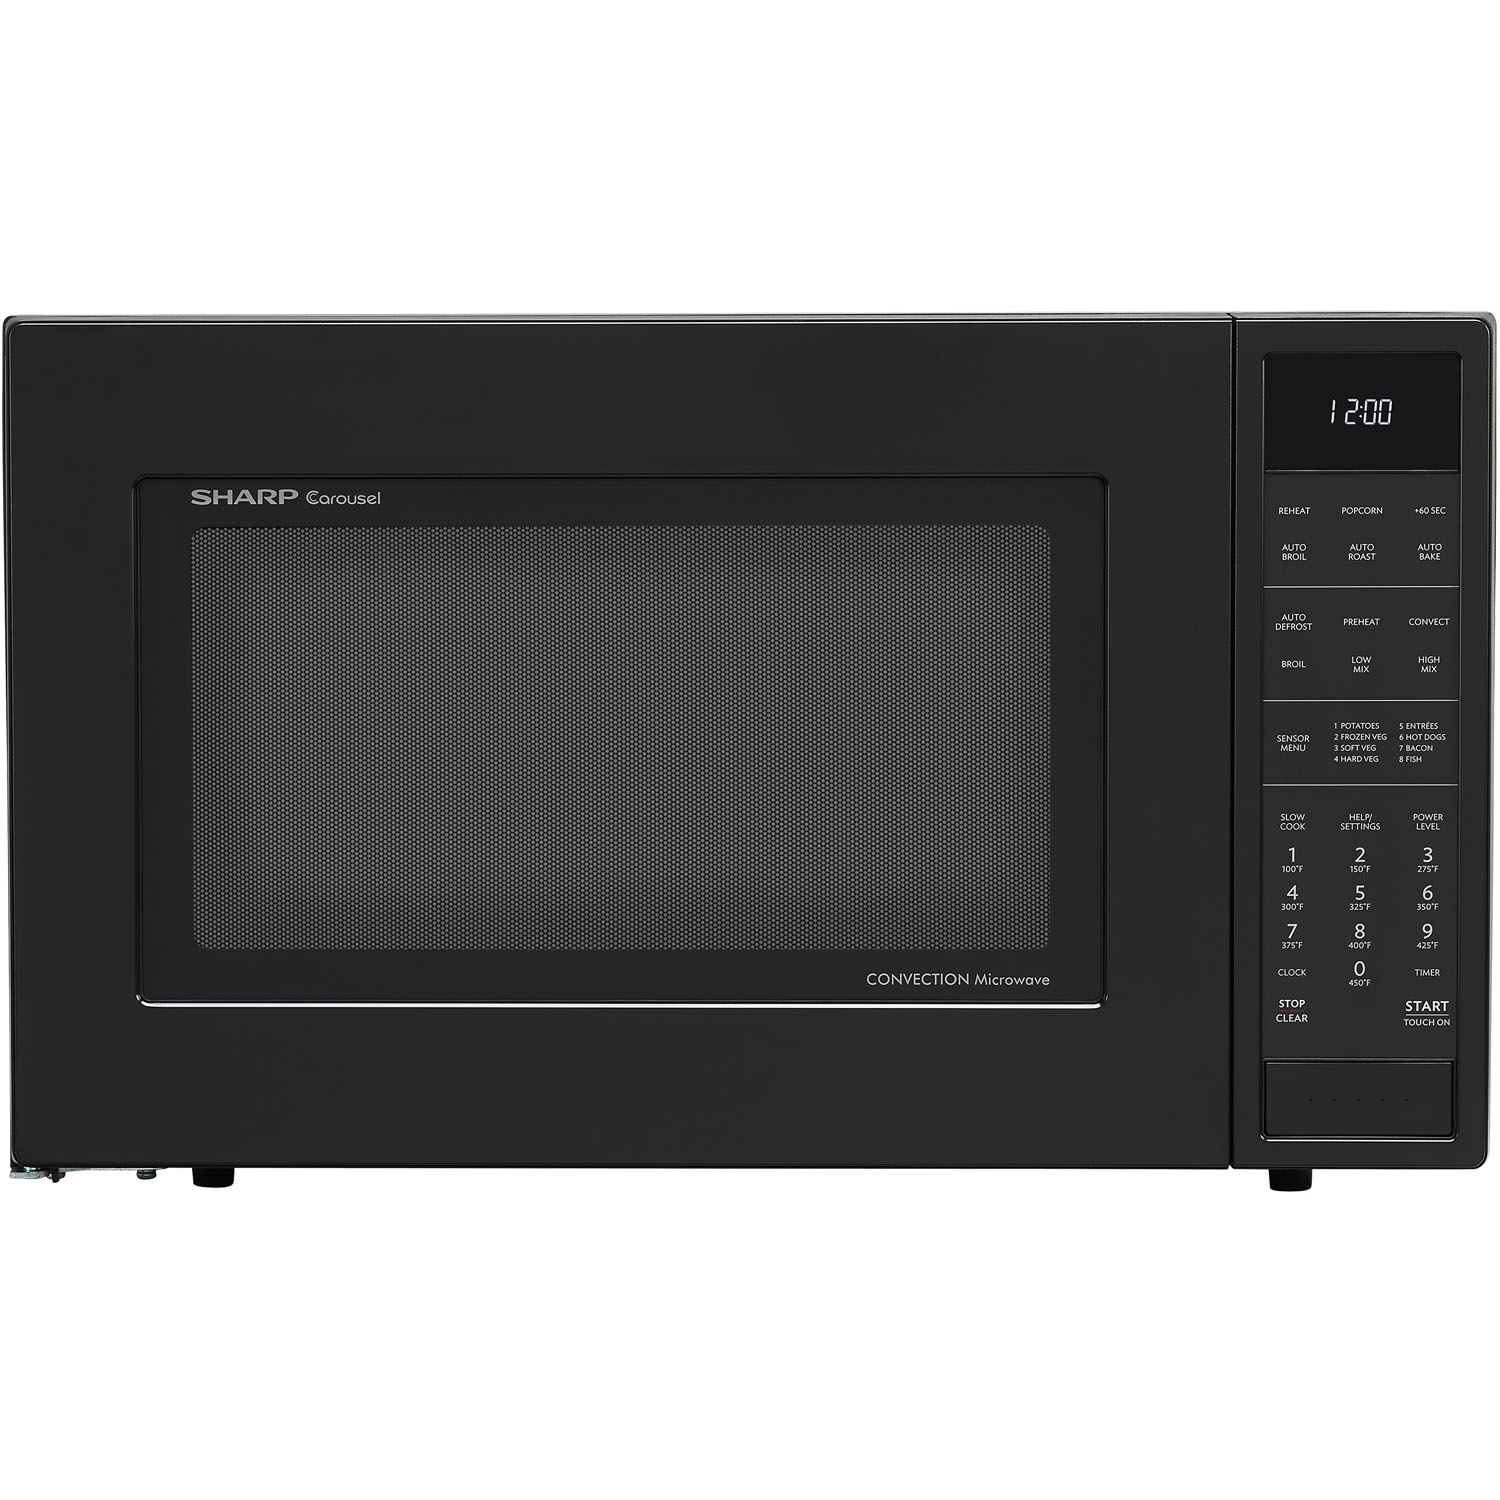 sharp 1 5 cu ft 900w convection microwave oven in black. Black Bedroom Furniture Sets. Home Design Ideas